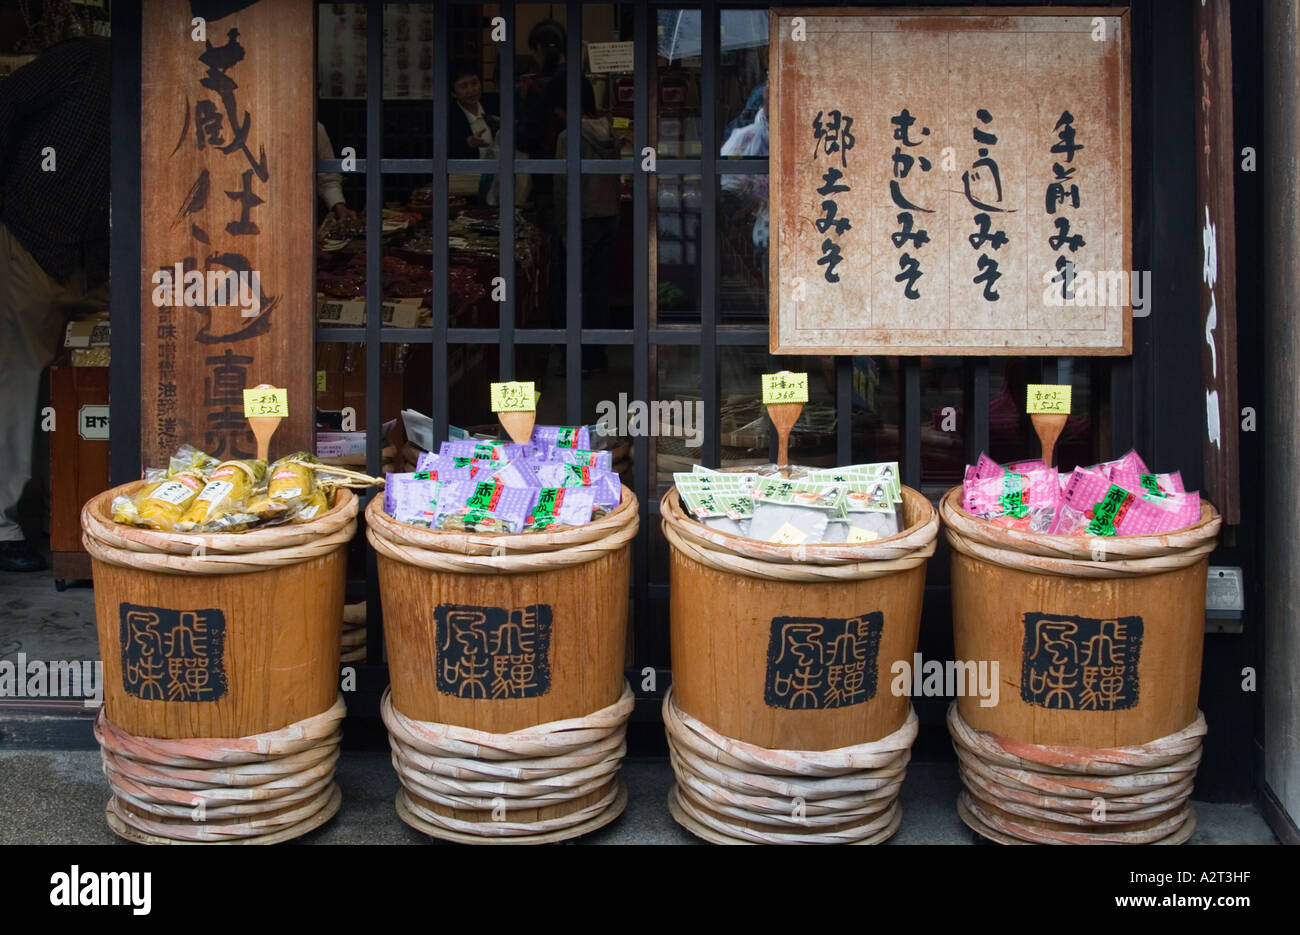 Storefront display in the historic mountain town of Takayama Gifu Prefecture JapanStock Photo